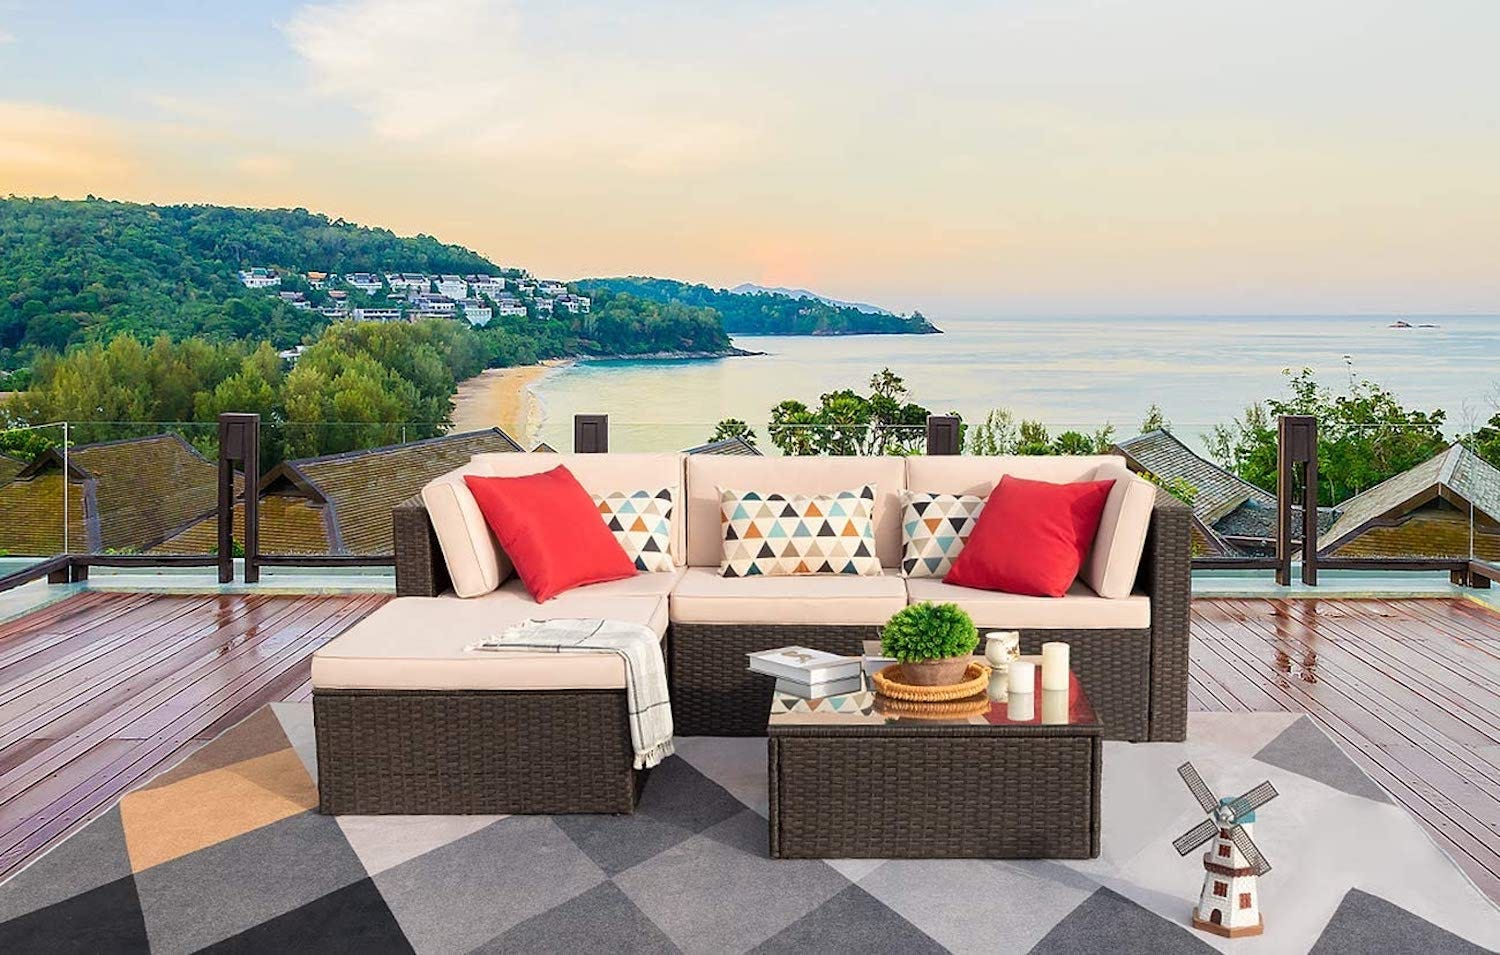 A beige patio sofa on a wood deck with a coastline in the background